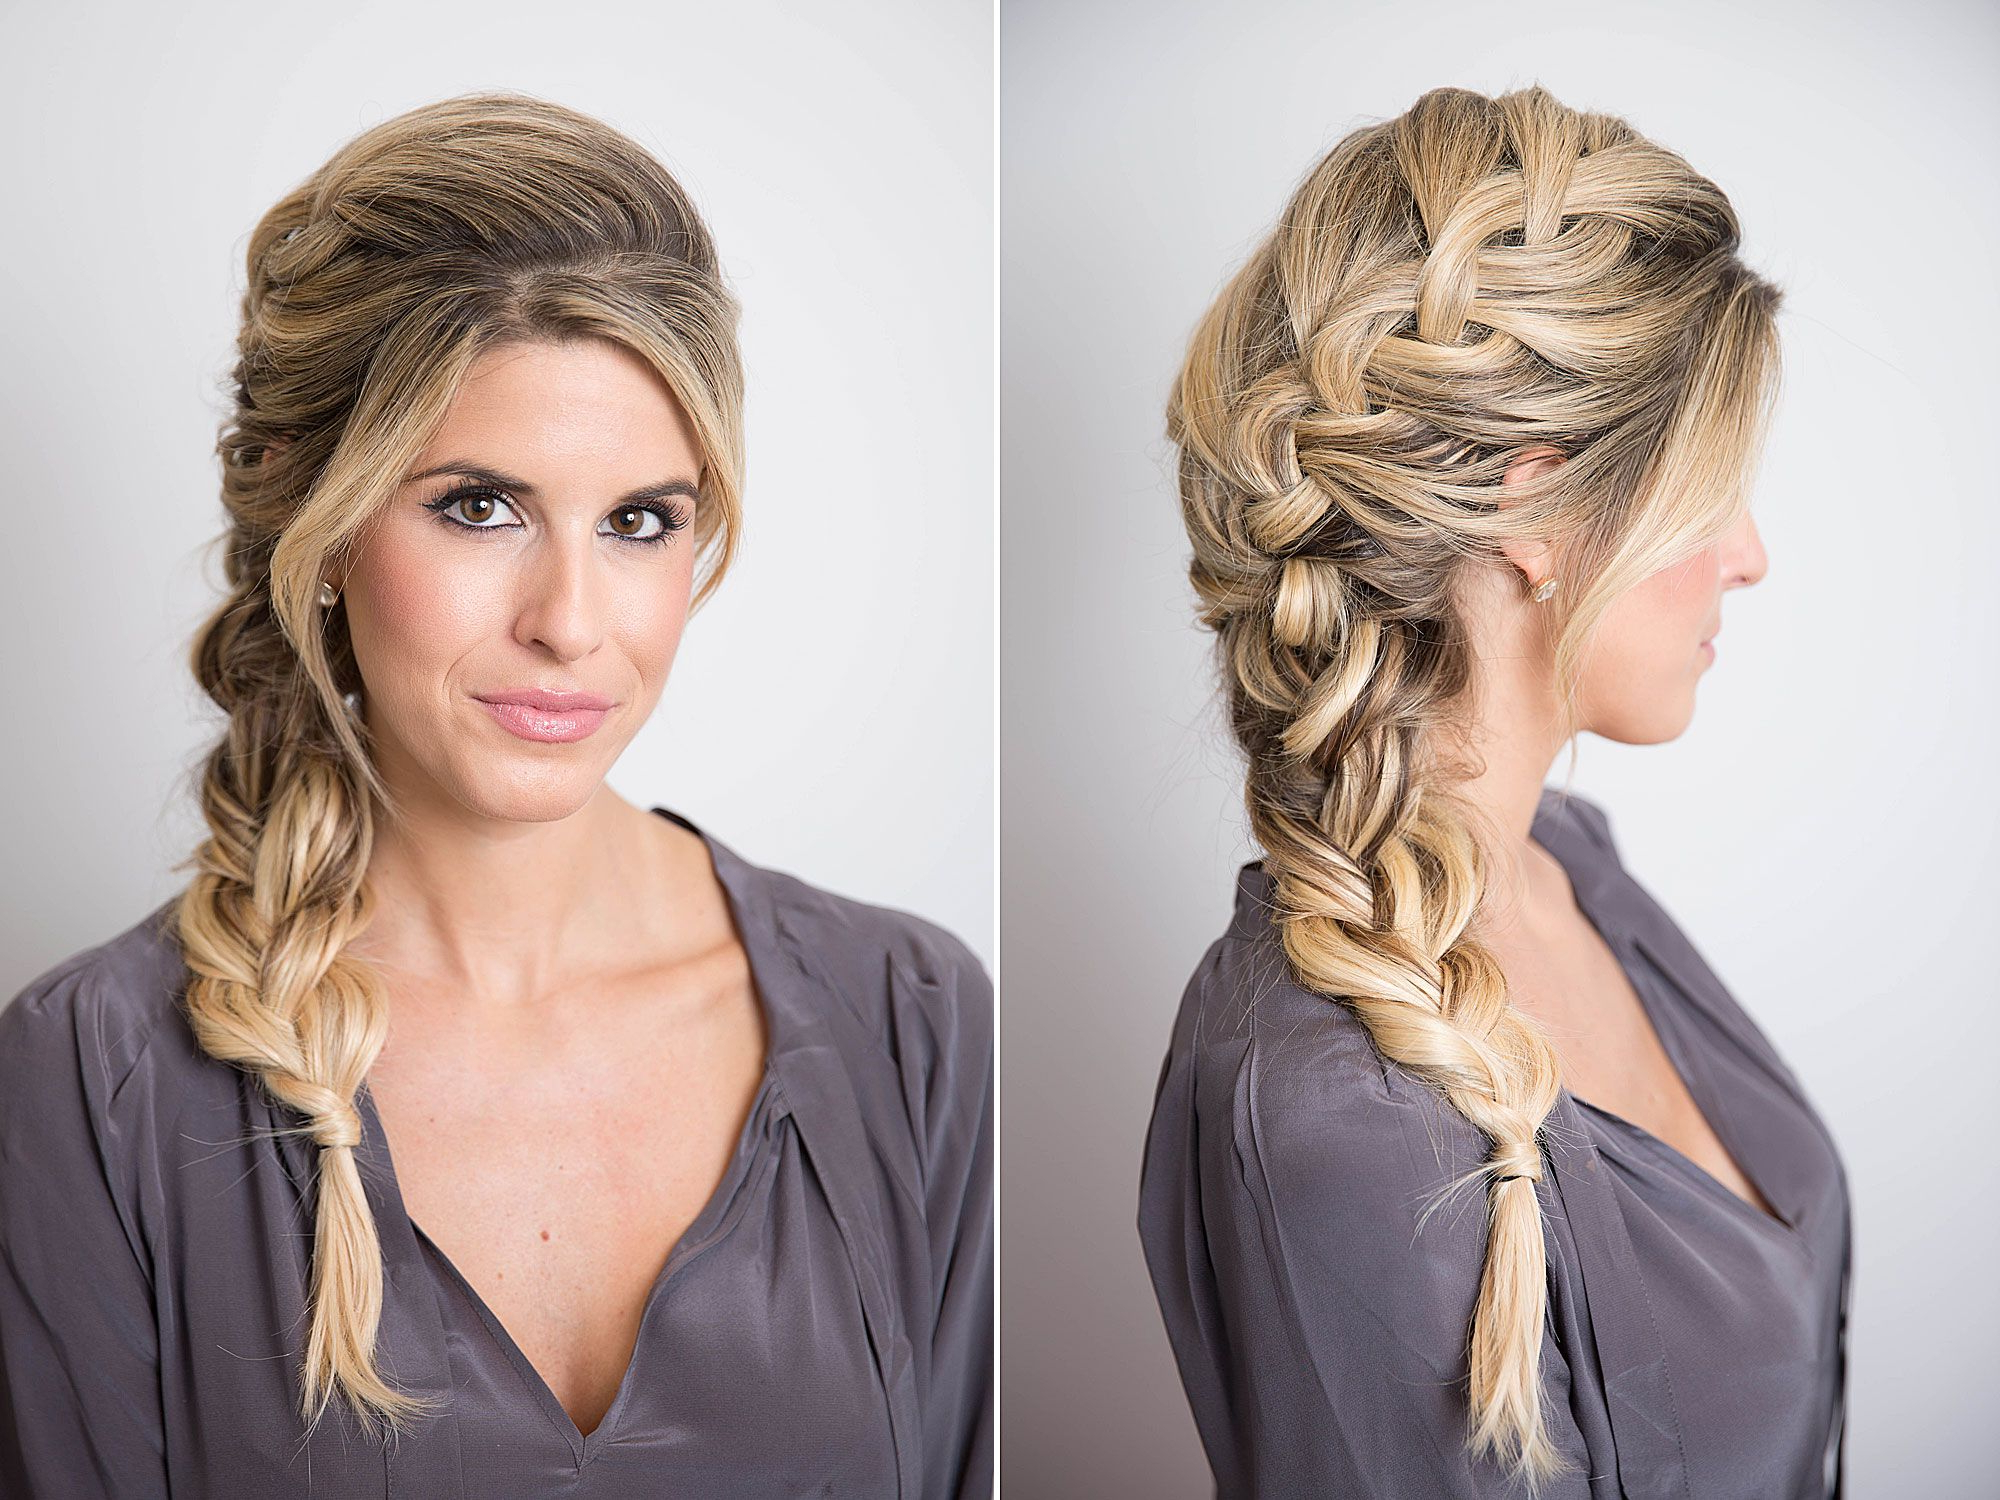 17 Braided Hairstyles With Gifs – How To Do Every Type Of Braid With Regard To Latest Intricate Rope Braid Ponytail Hairstyles (View 1 of 20)